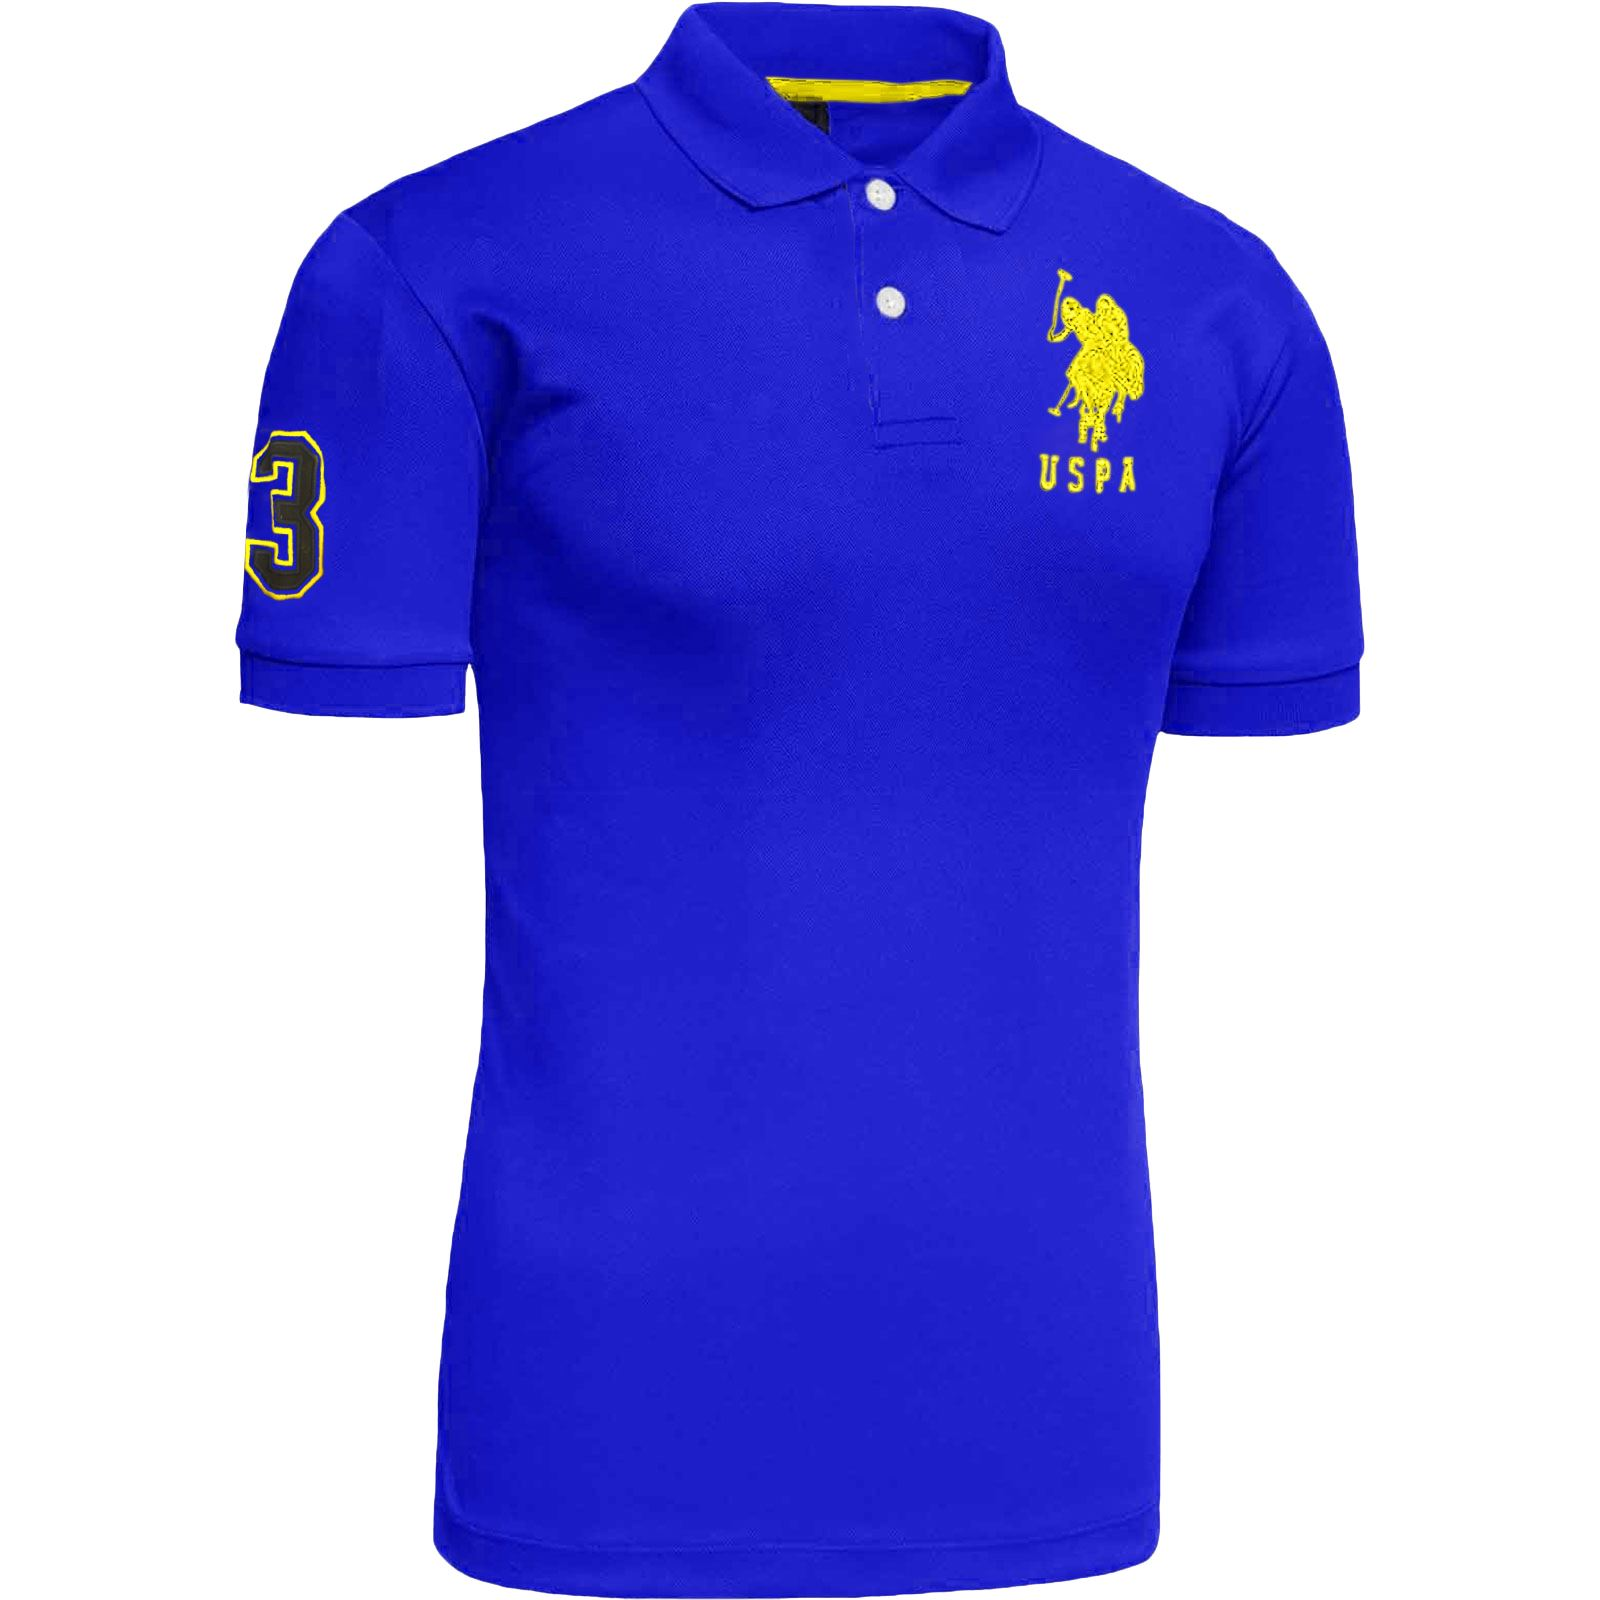 New mens us polo assn 2017 design tshirt top coloured for Polo t shirt design images